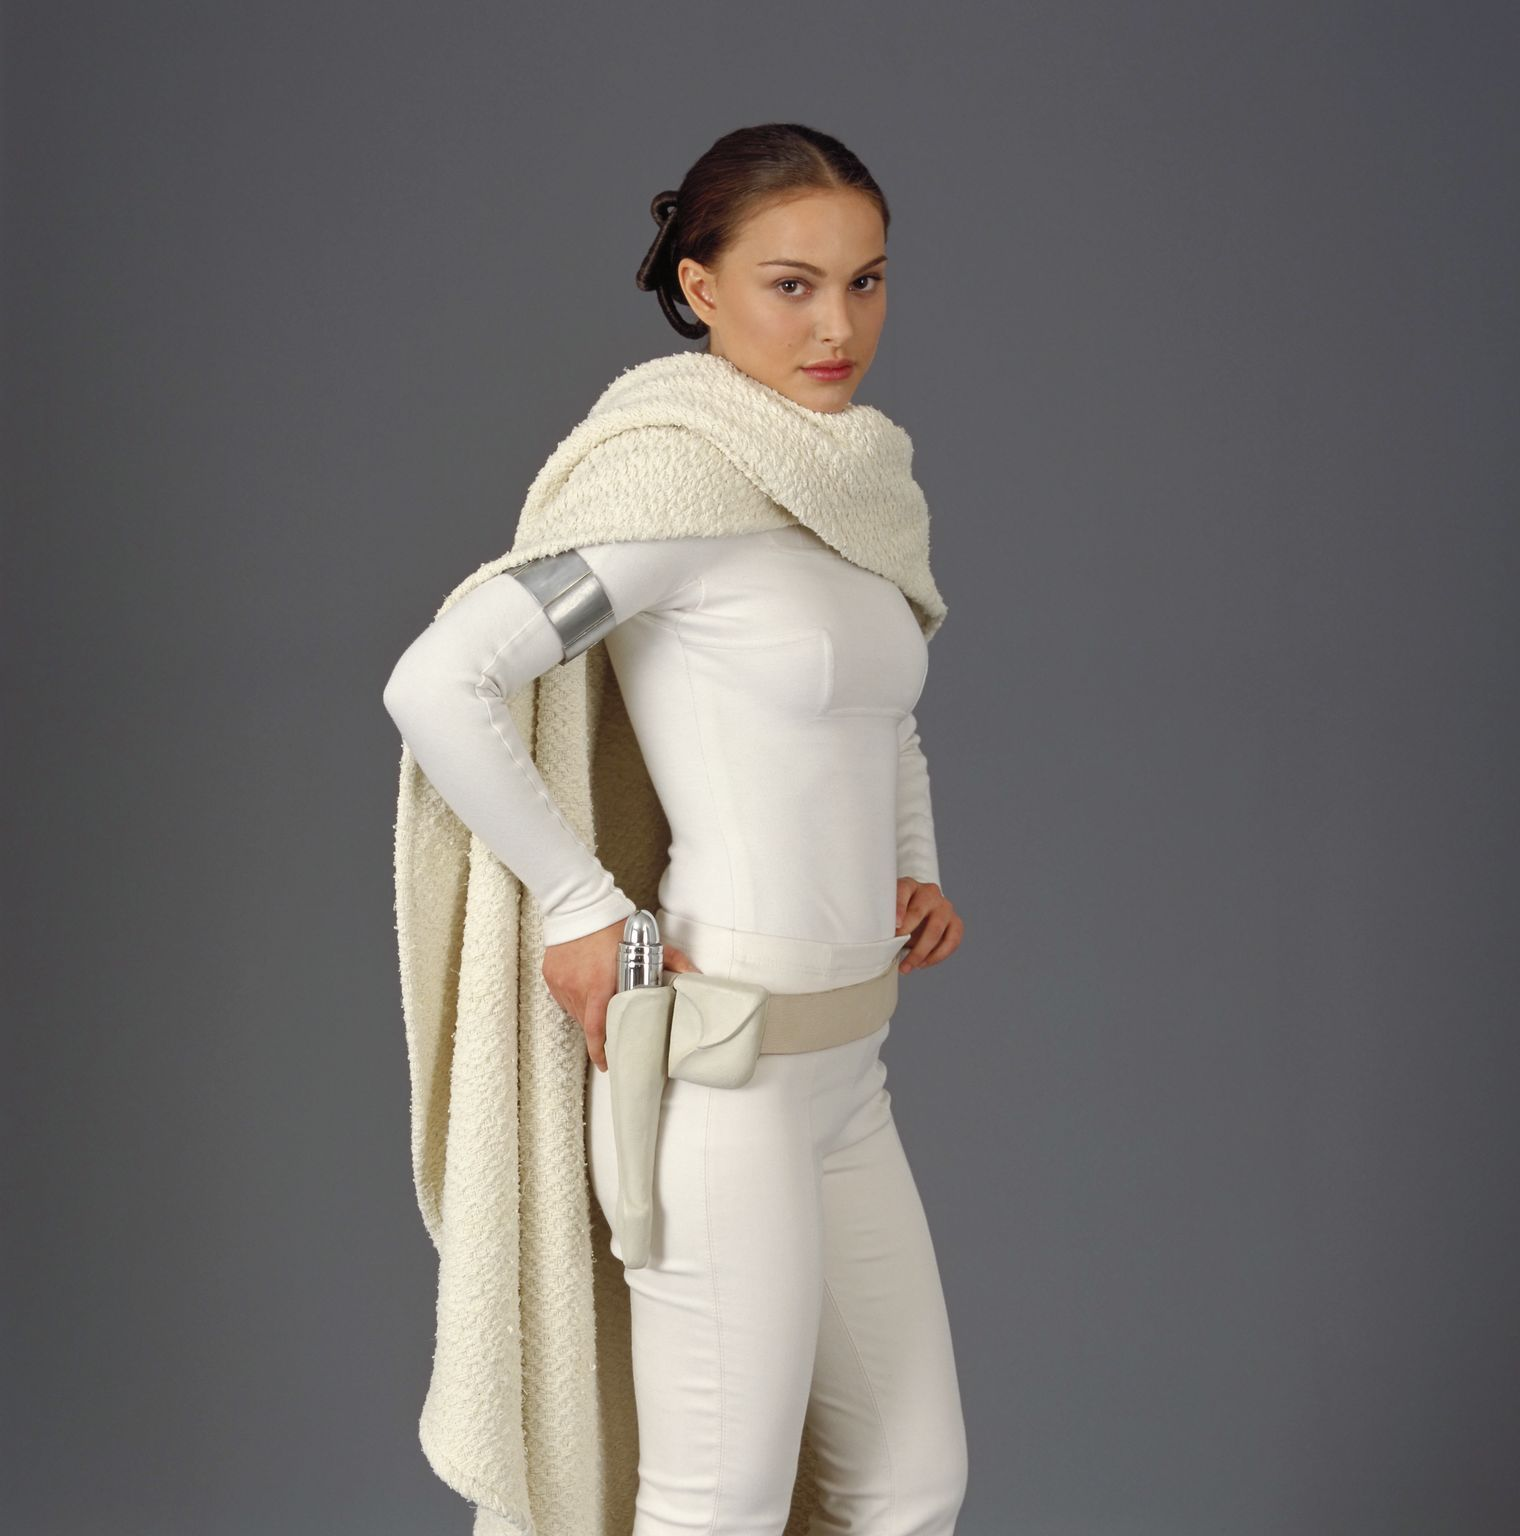 Your queen star war padme amidala completely agree